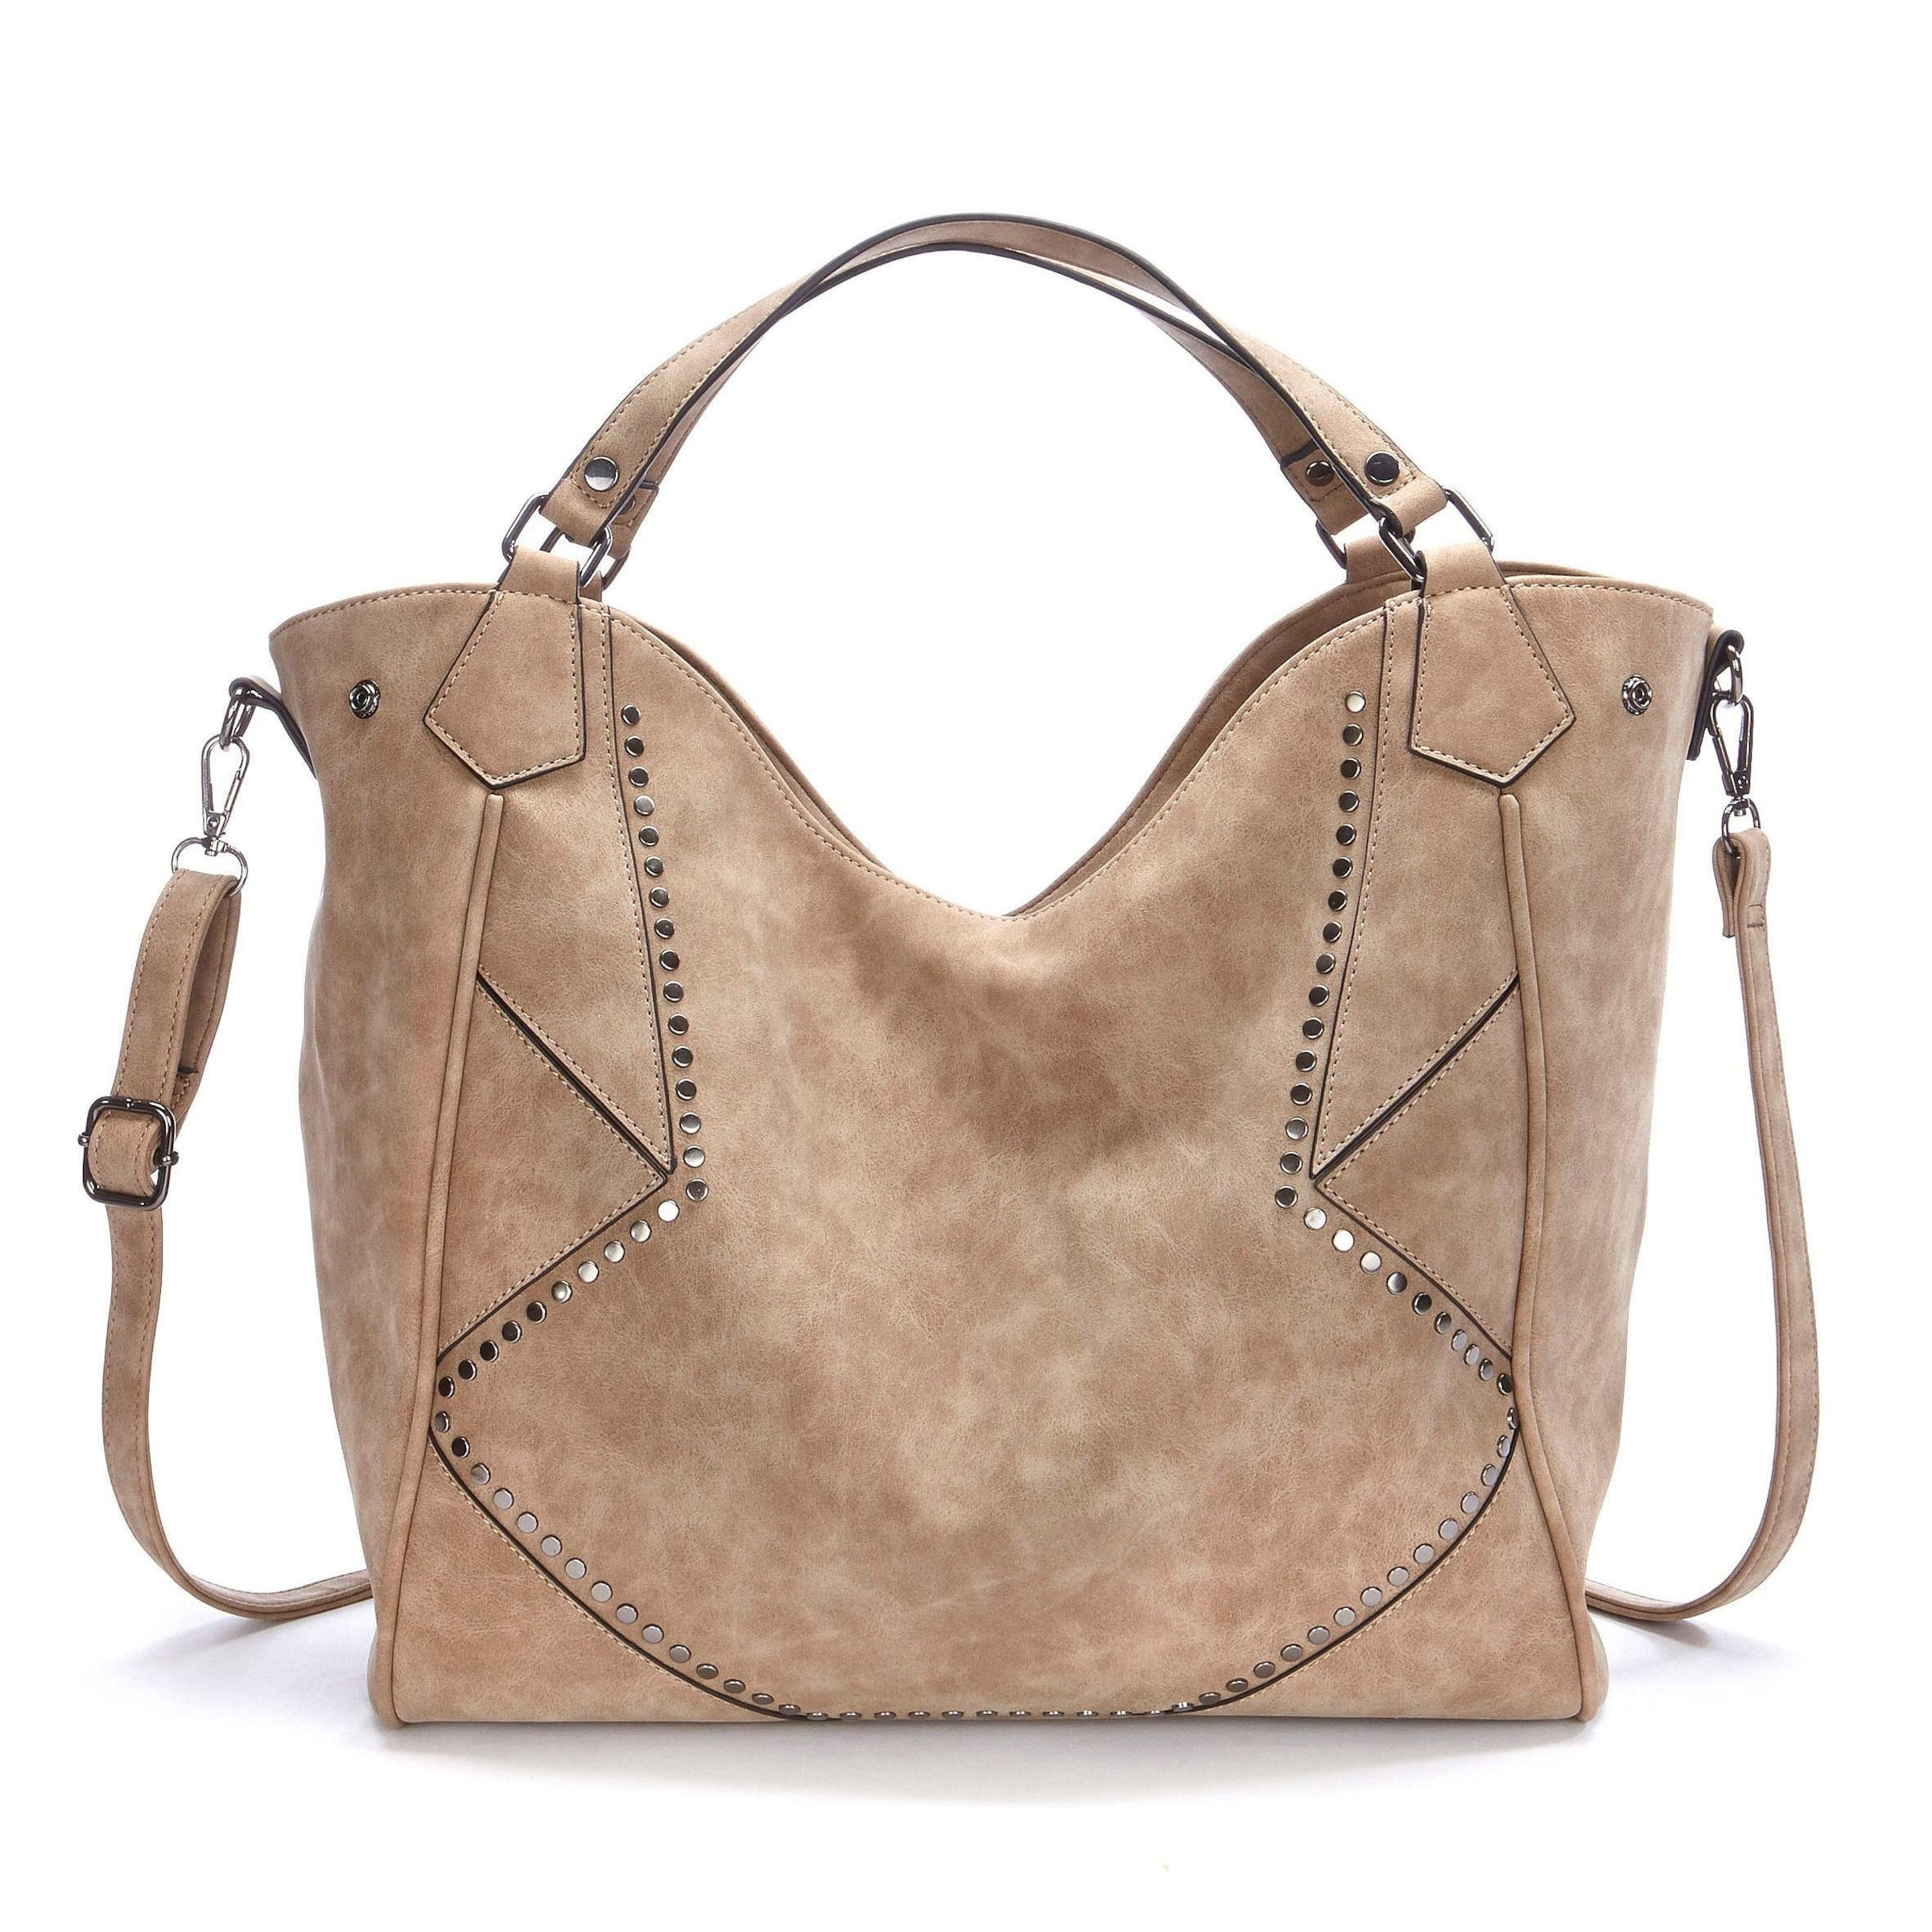 Schultertasche Lascana In Taupe Lascana Schultertasche Schultertasche Lascana Taupe Lascana Schultertasche In In Taupe H29IbeDWEY